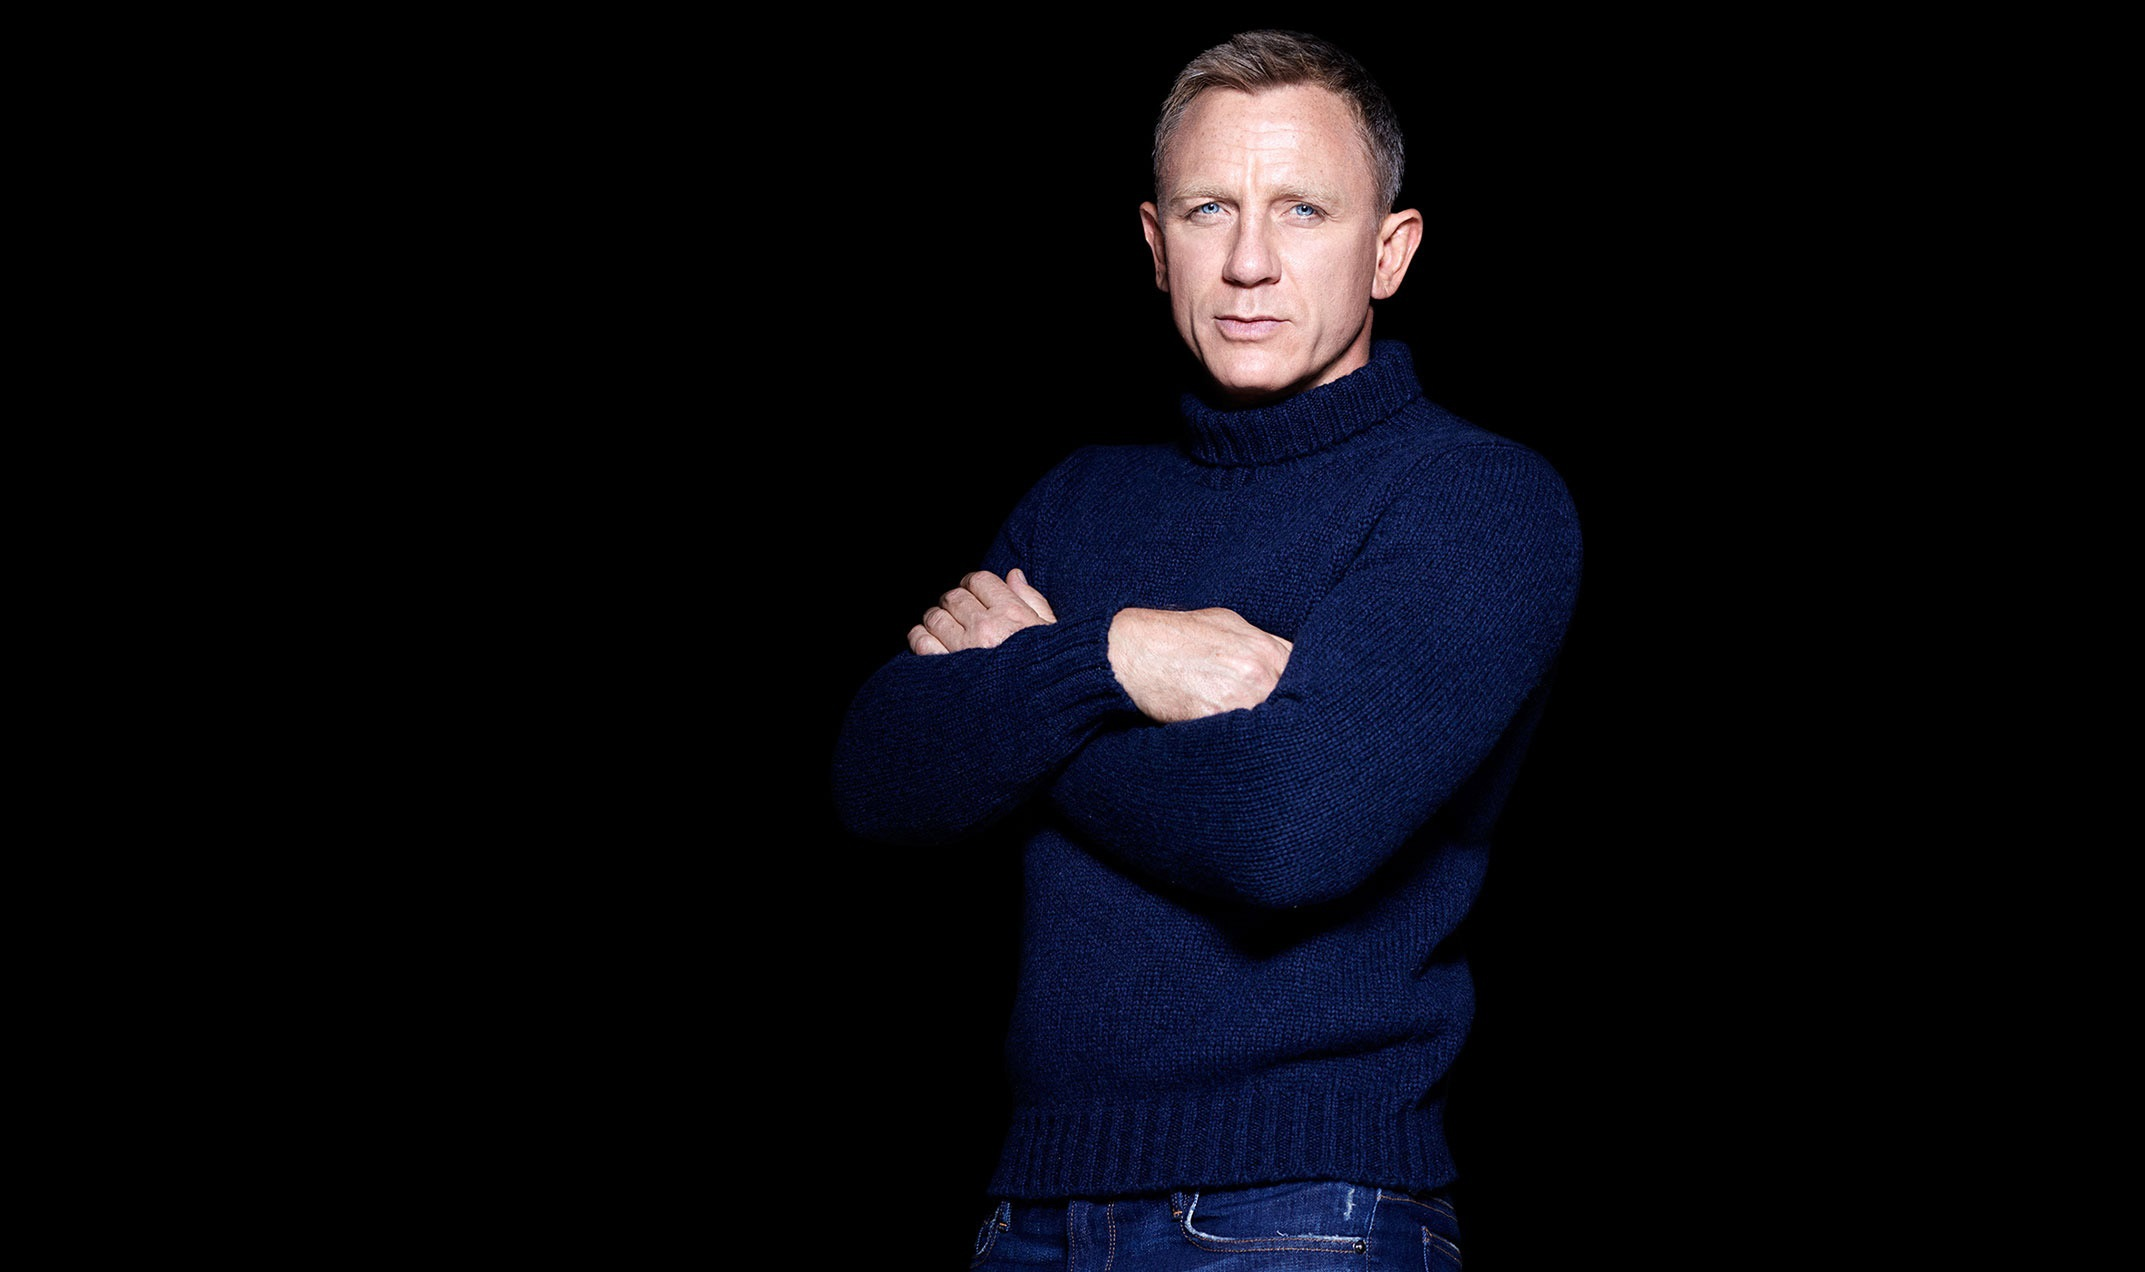 Daniel Craig Wallpapers Images Photos Pictures Backgrounds